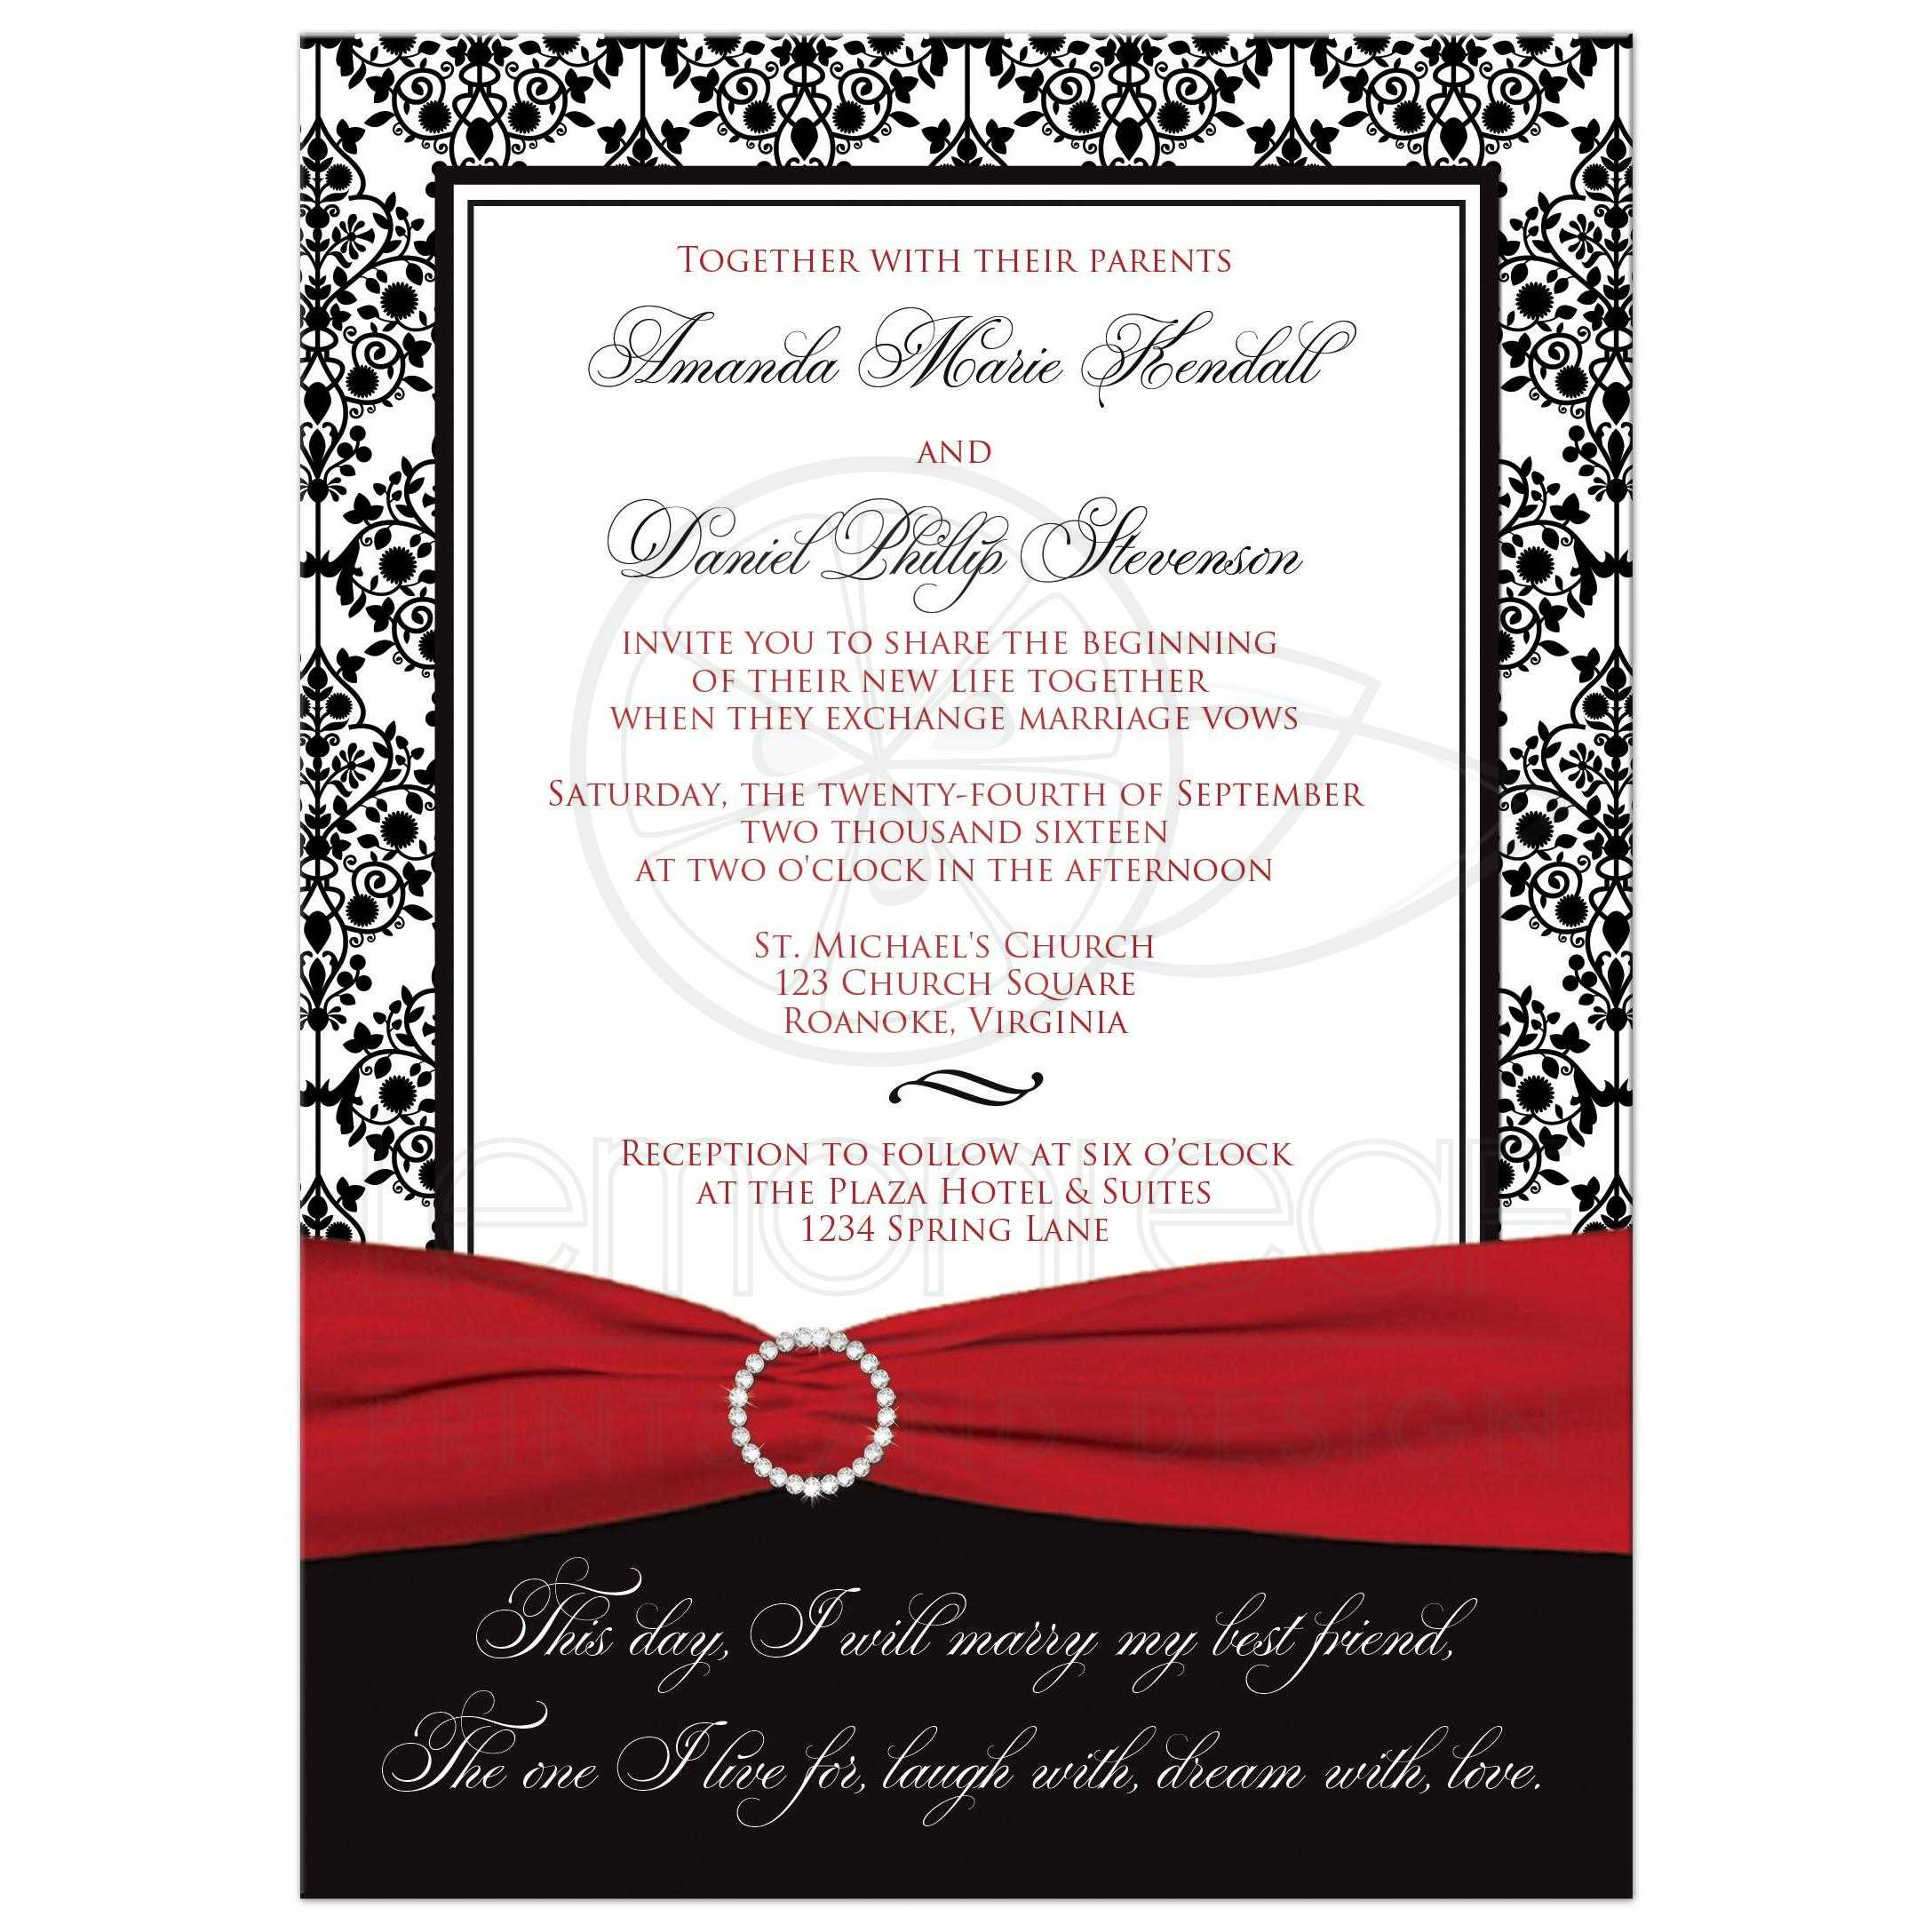 black and white wedding invitations templates - Romeo.landinez.co